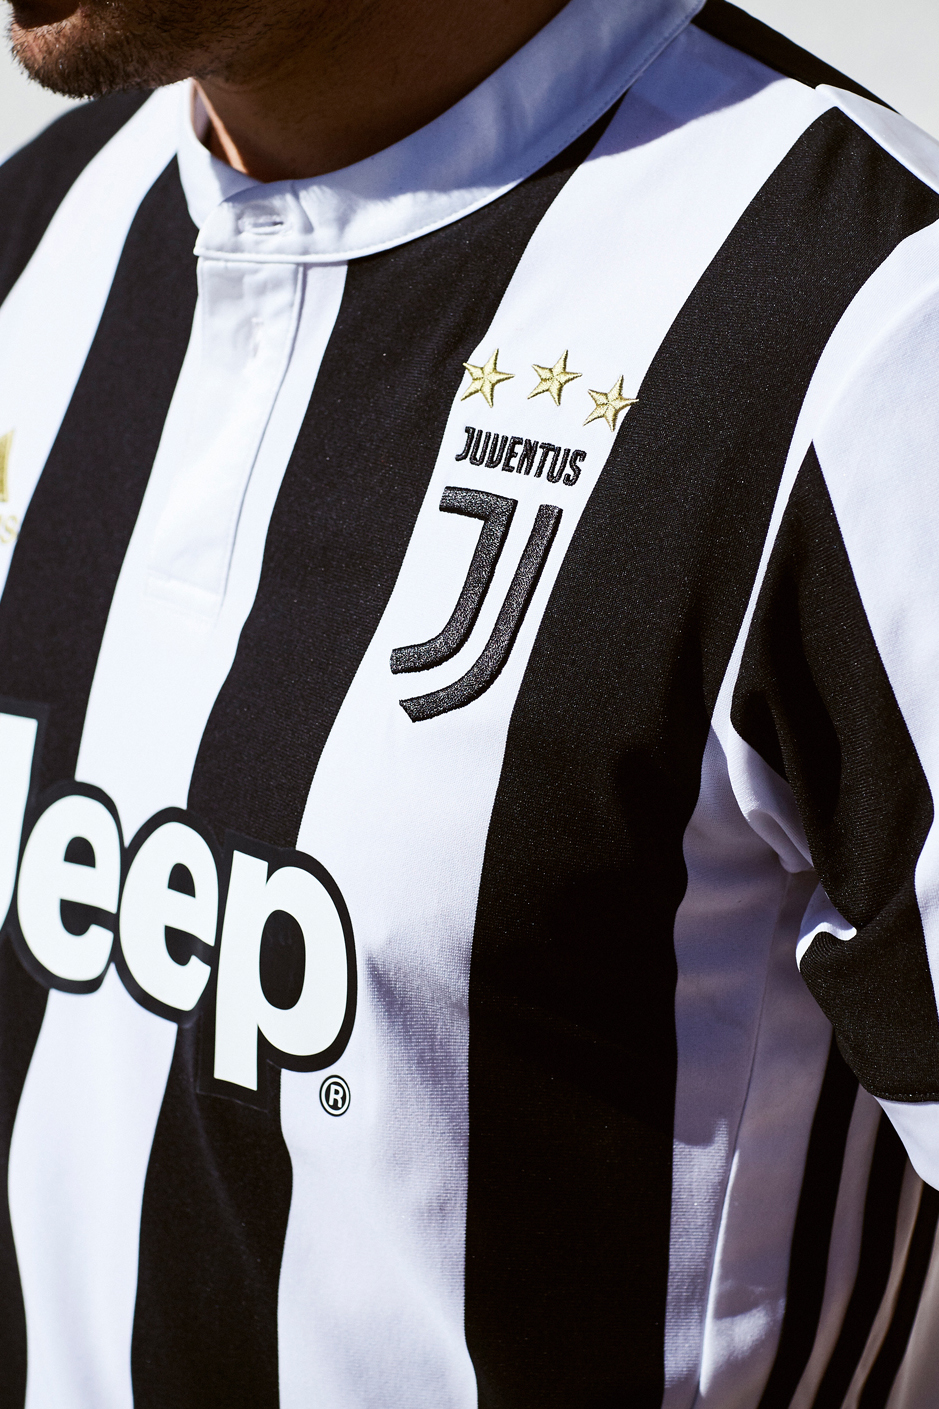 new styles 9bcd1 85b77 Juventus 2017/18 Adidas Home Kit – Forza27